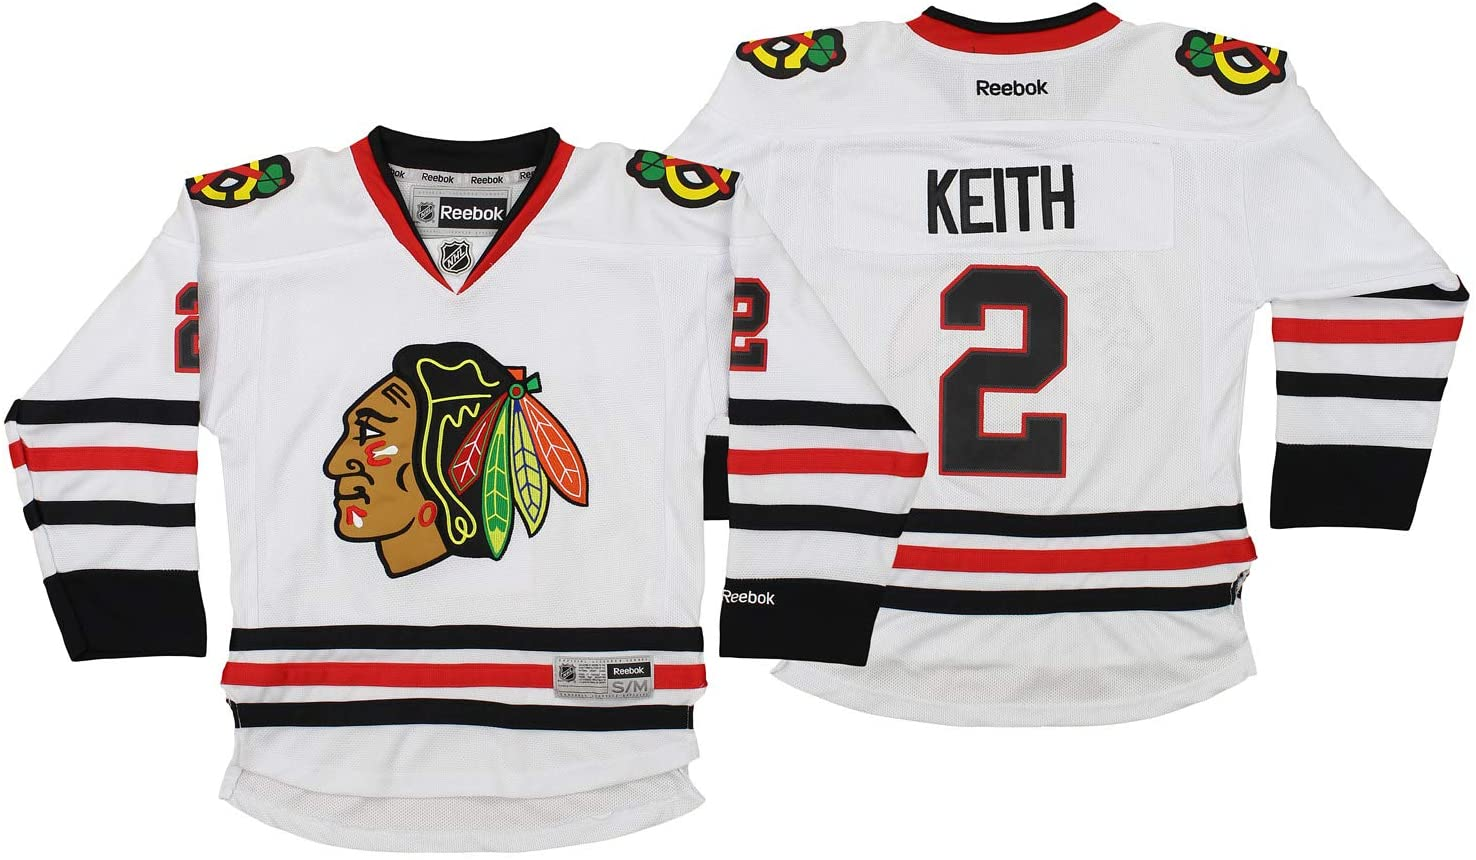 Reebok NHL Youth Boys Chicago Blackhawks Premier Goal Duncan Keith #2 Player Jersey, White